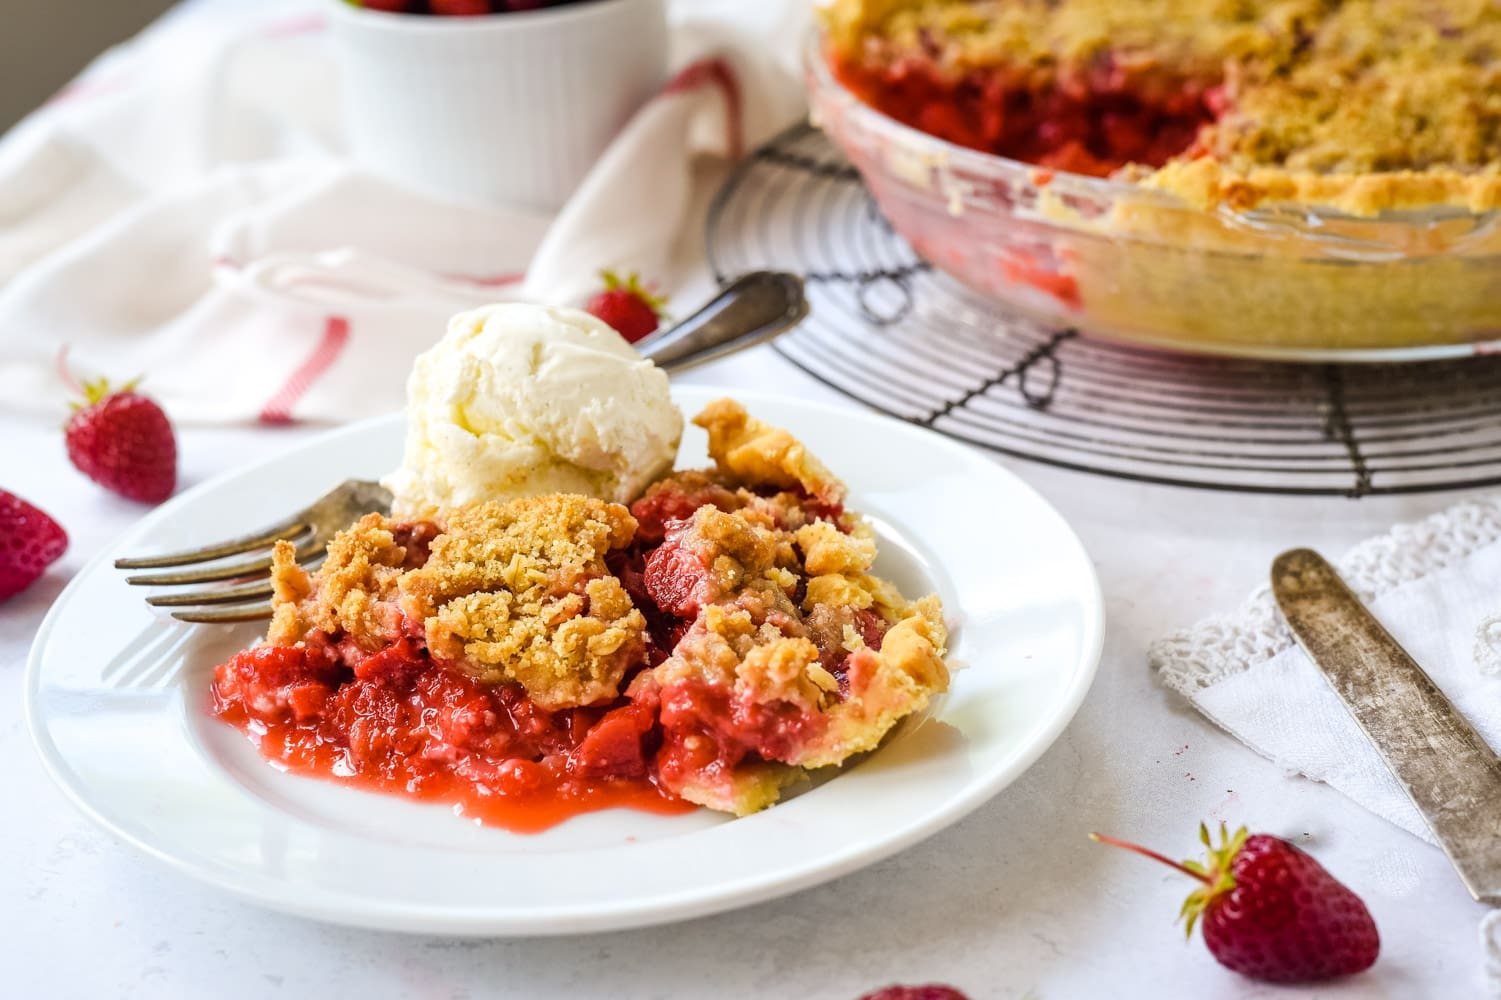 strawberry rhubarb pie with ice cream